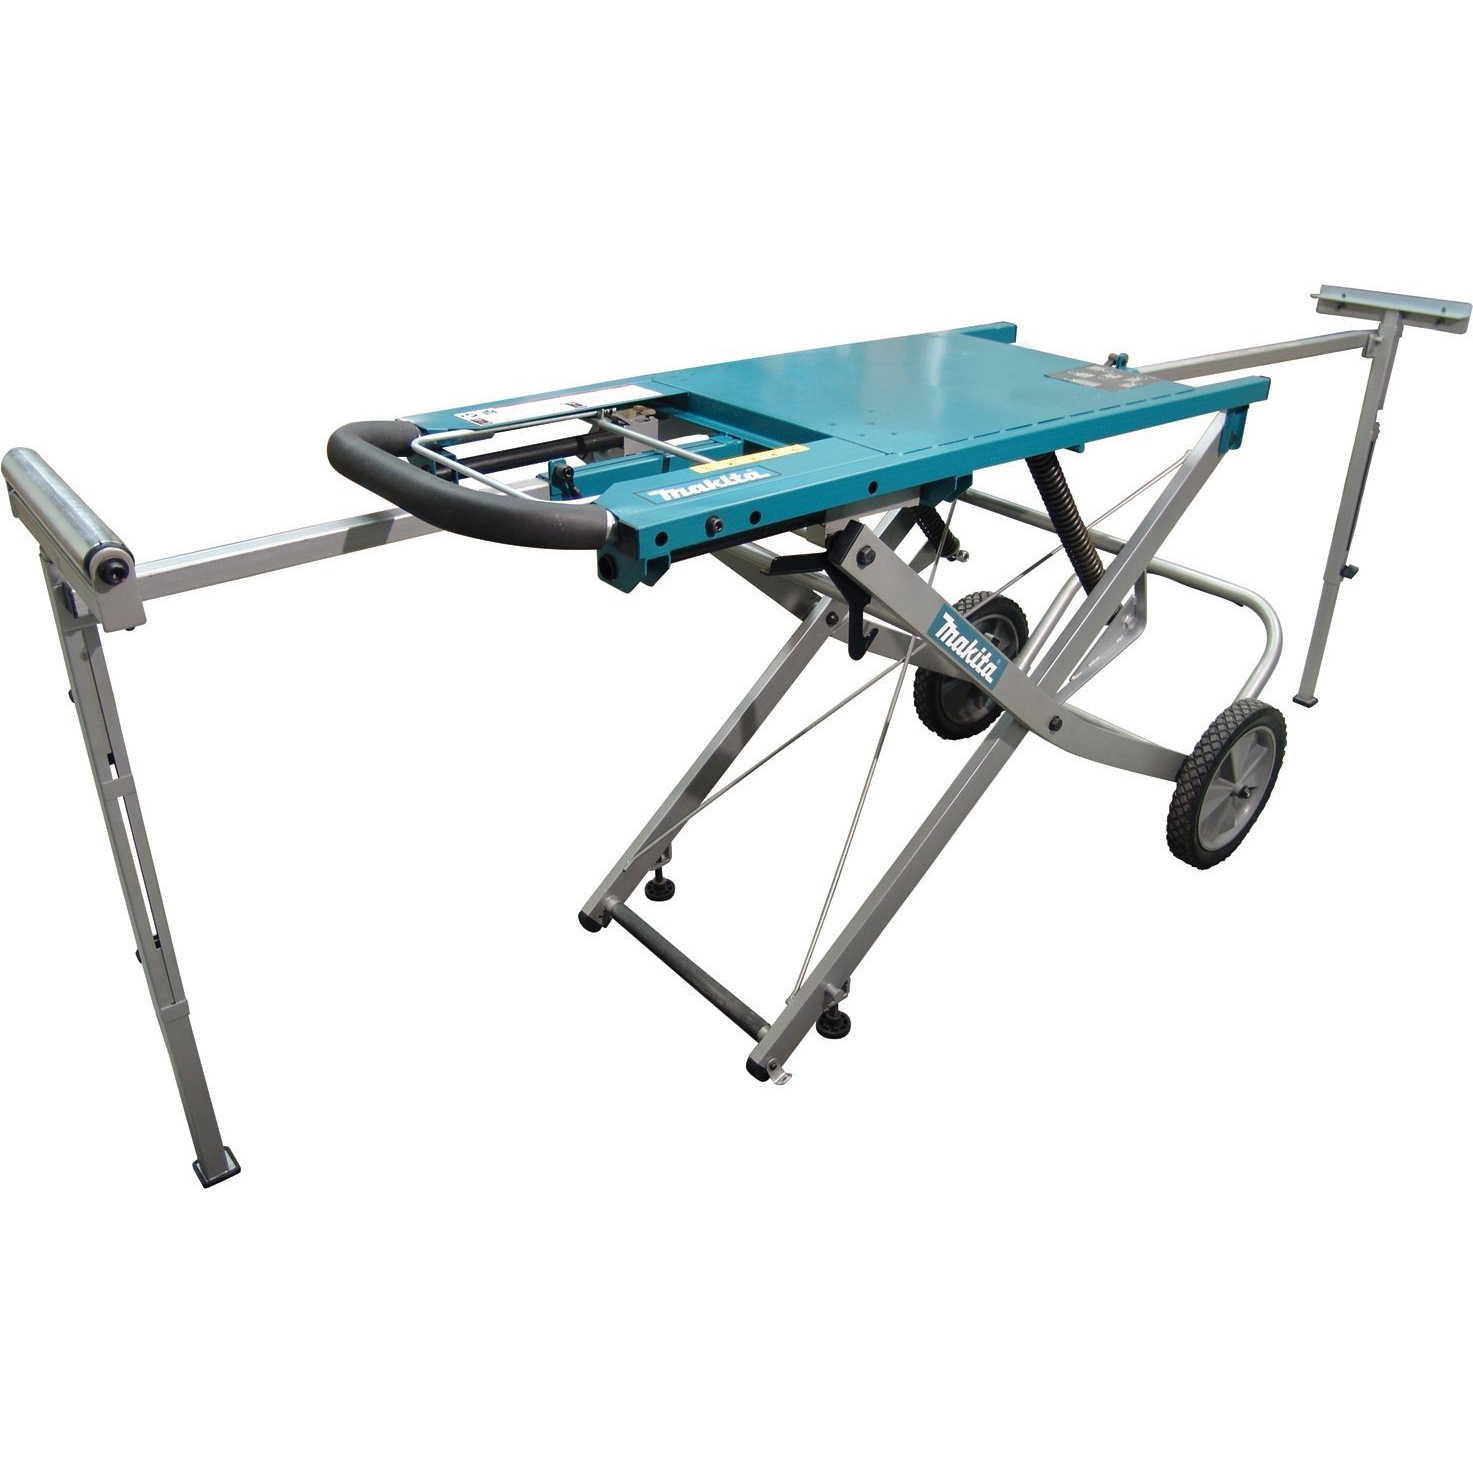 Makita 195083 4 Job Site Rolling Miter Saw Stand With 5 Height Settings Ebay